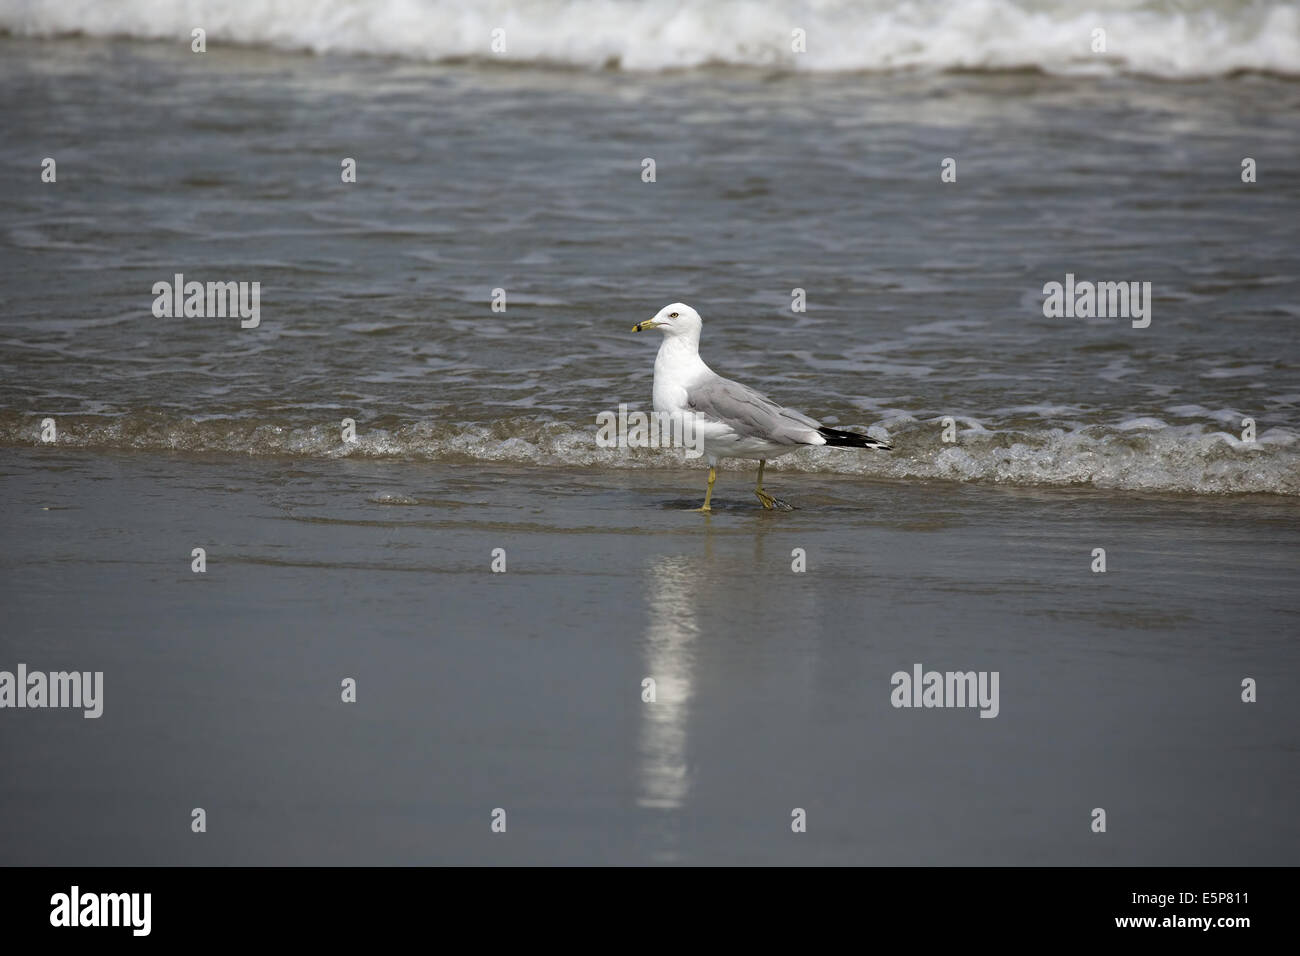 Seagull In The Surf On Garden City South Carolina Seashore